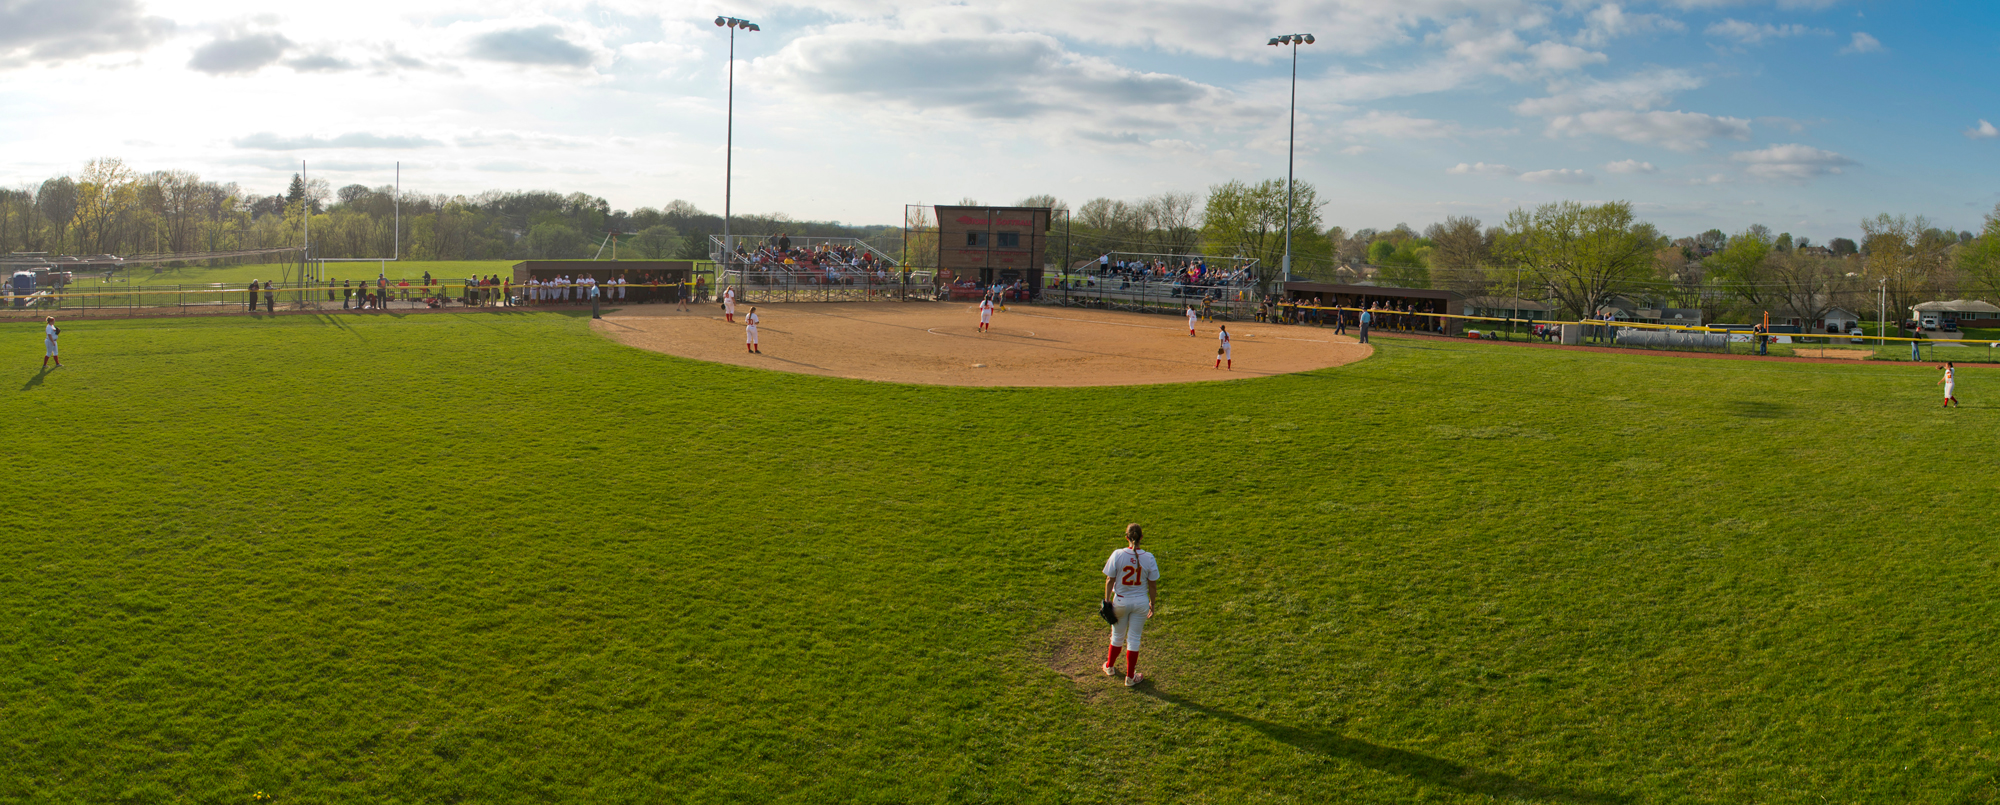 Simpson Softball Complex